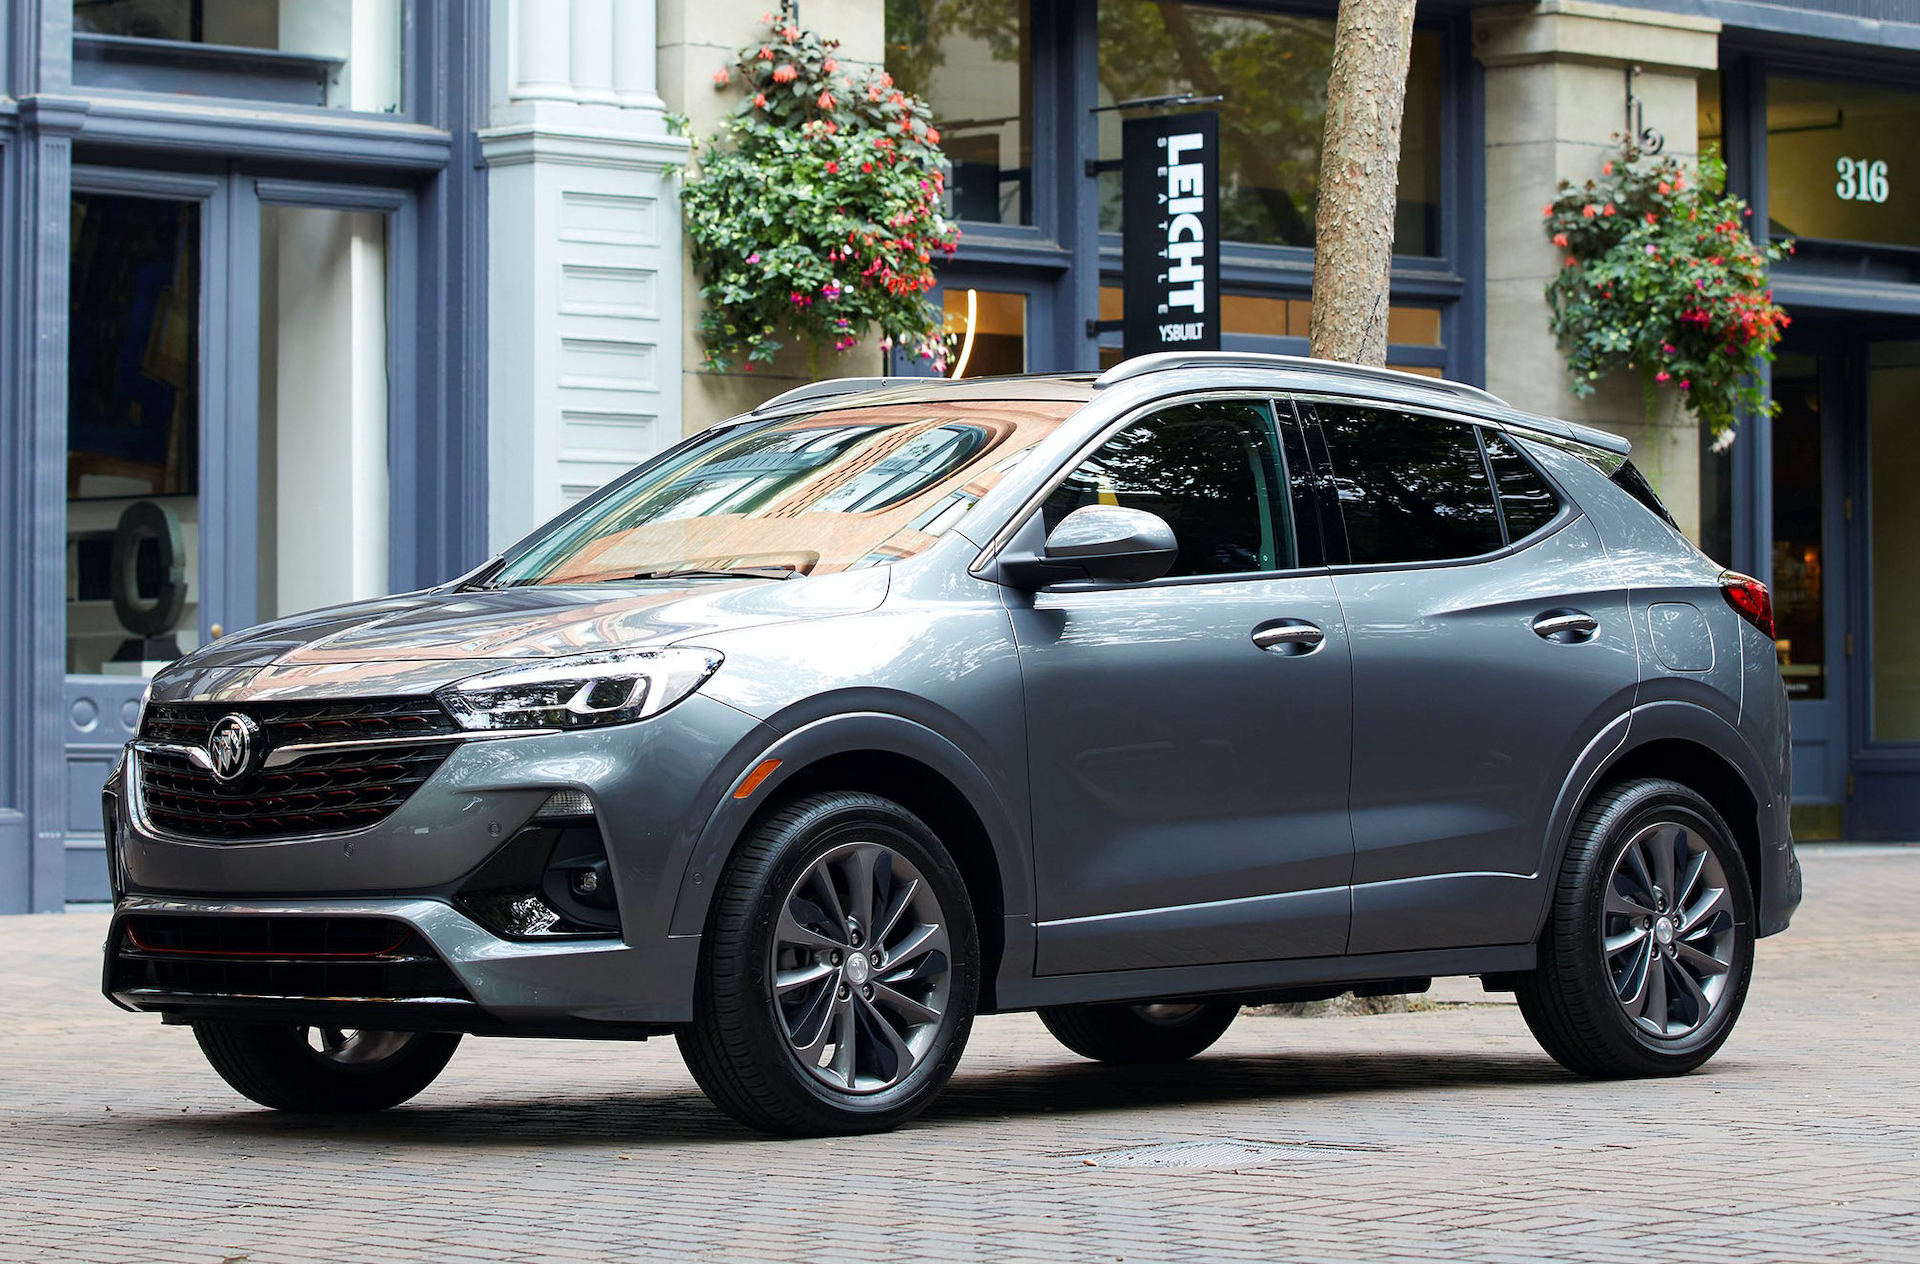 2021 Buick Encore Review, Ratings, Specs, Prices, And Photos 2021 Buick Encore Gx Pictures, Ratings, Road Test